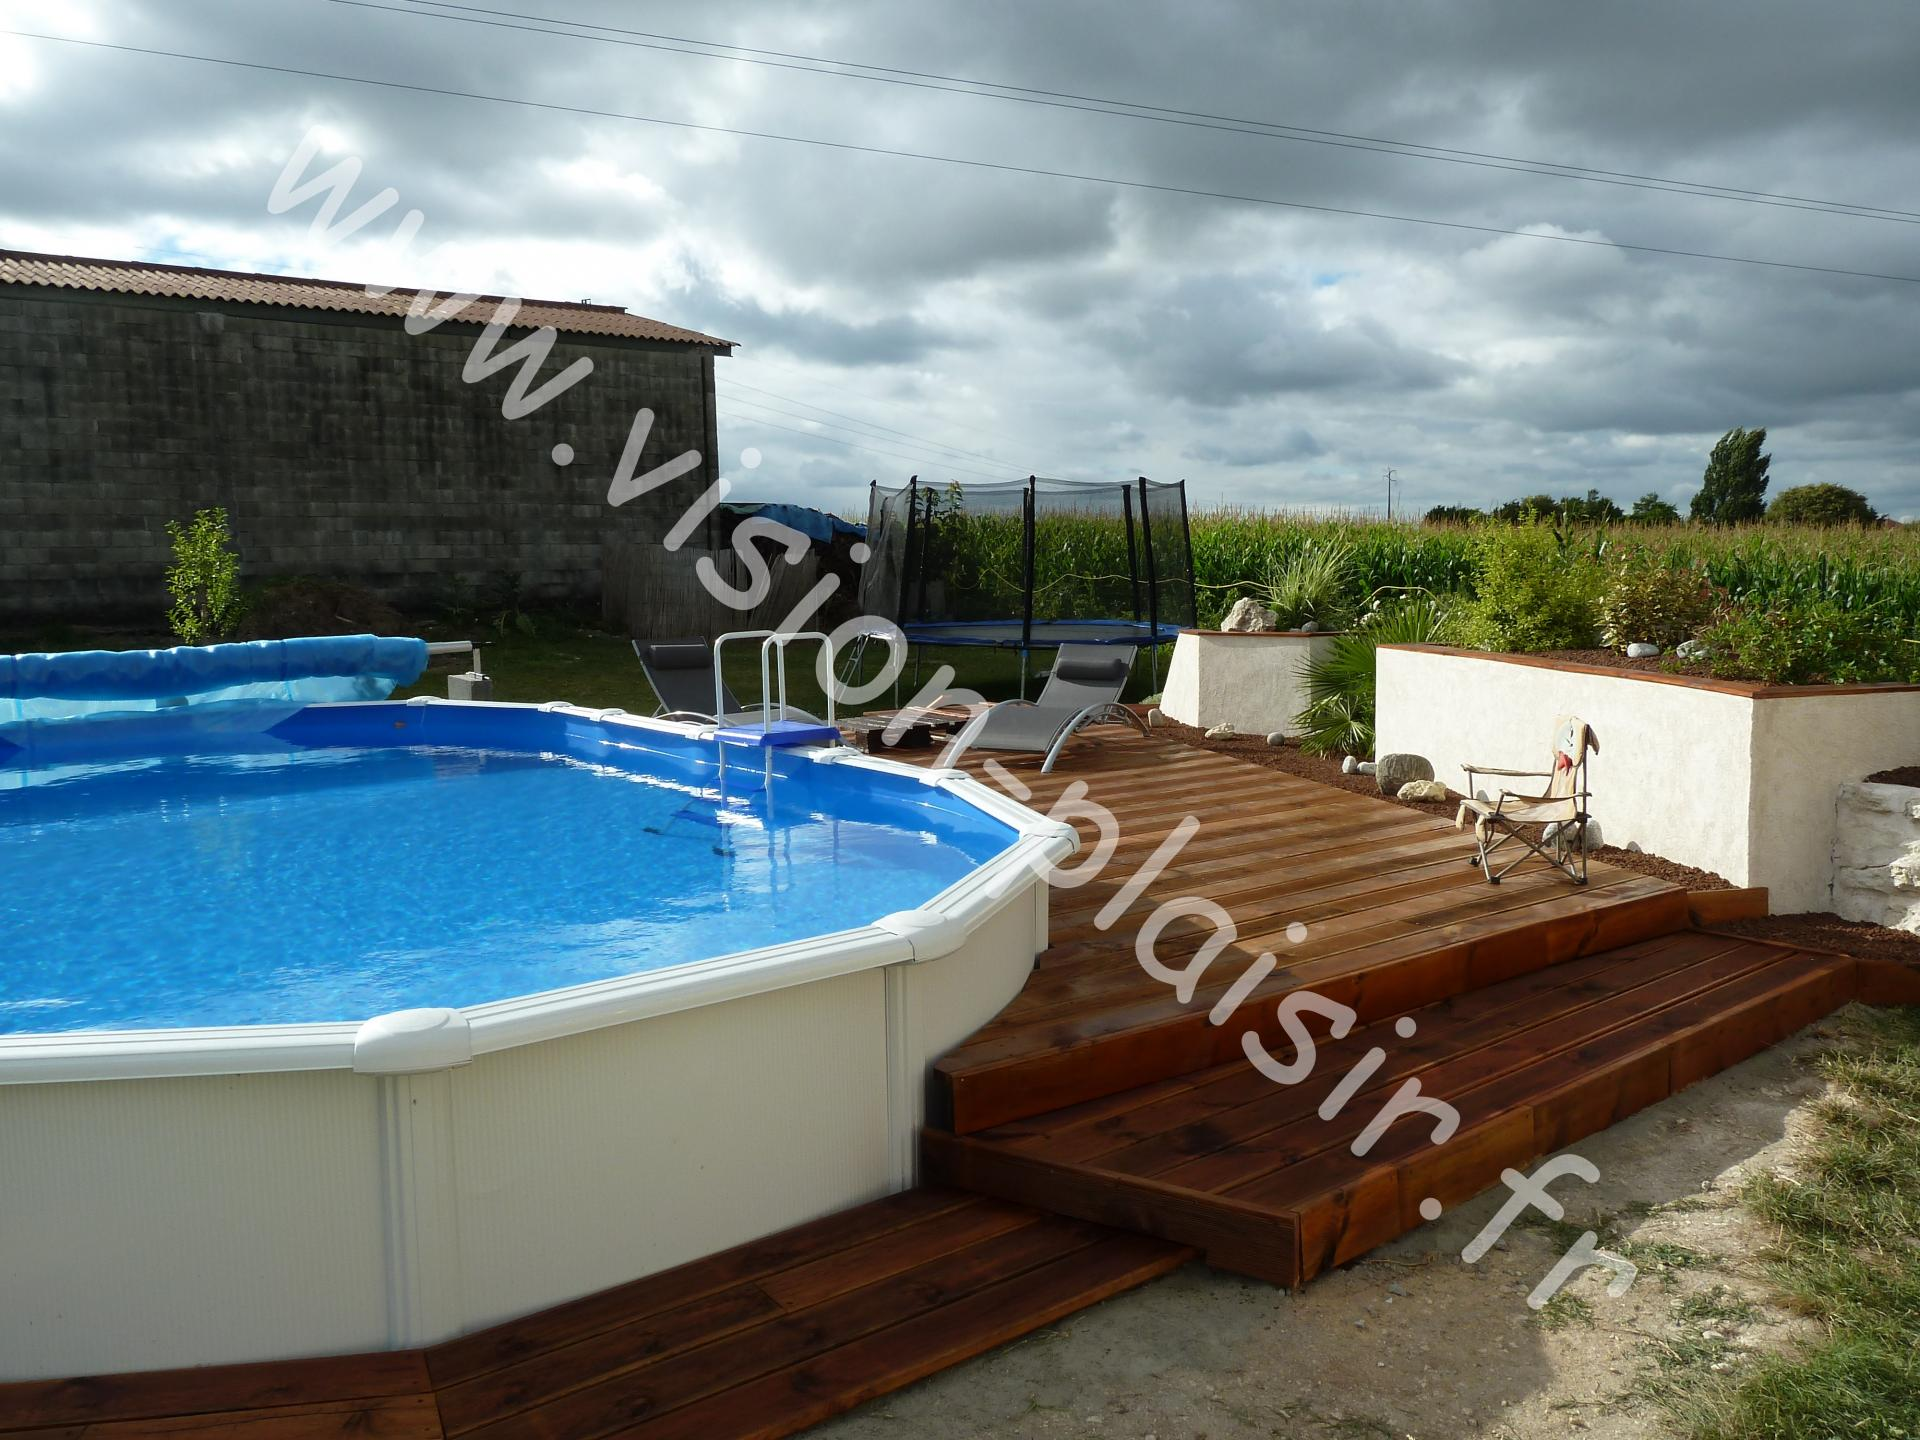 Cout d une piscine co t d 39 une piscine spa piscines for Cout installation piscine